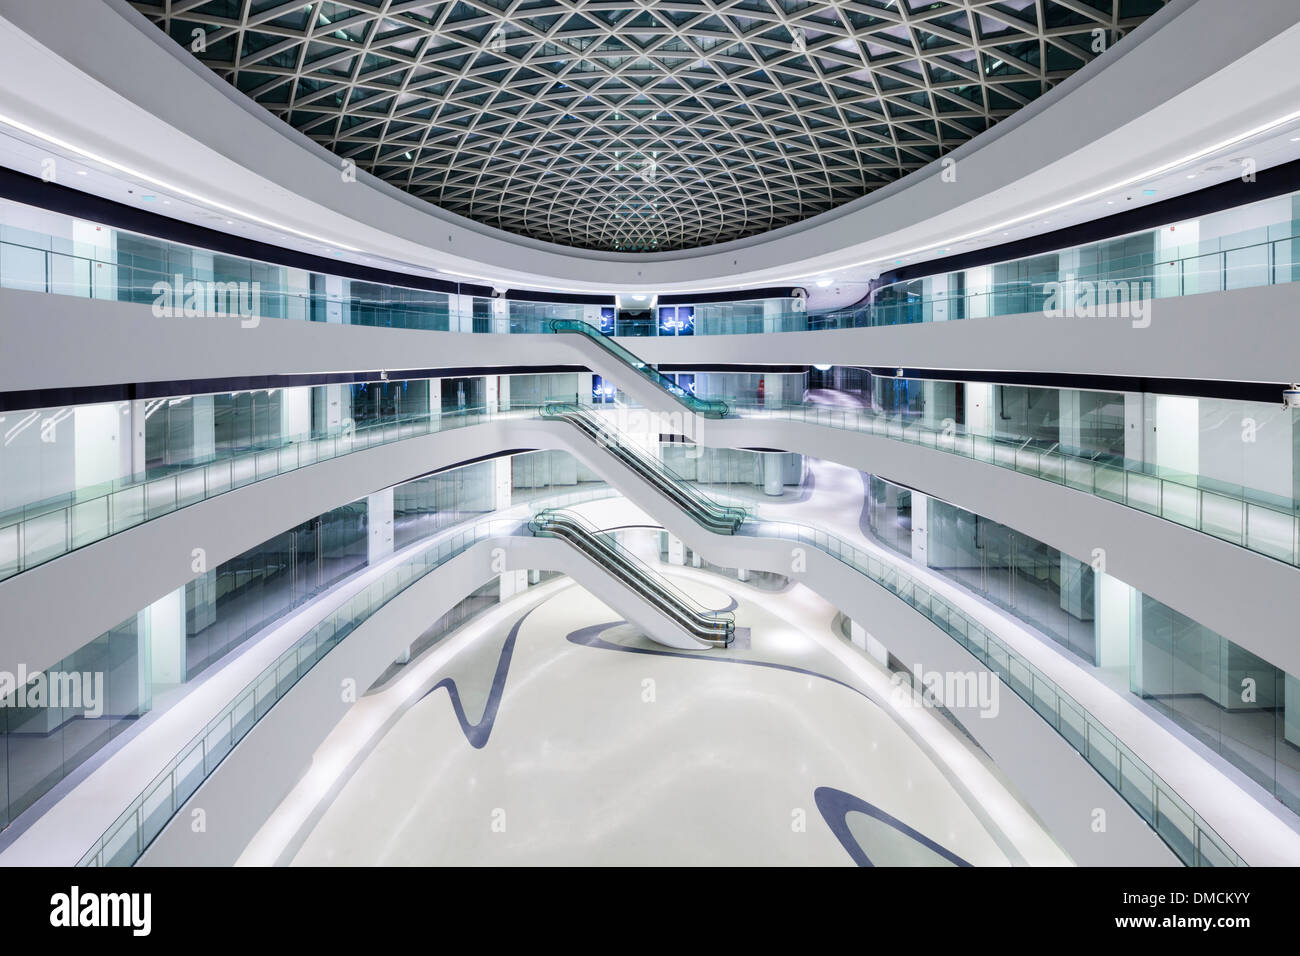 The Zaha Hadid Designed Galaxy Soho Retail And Office